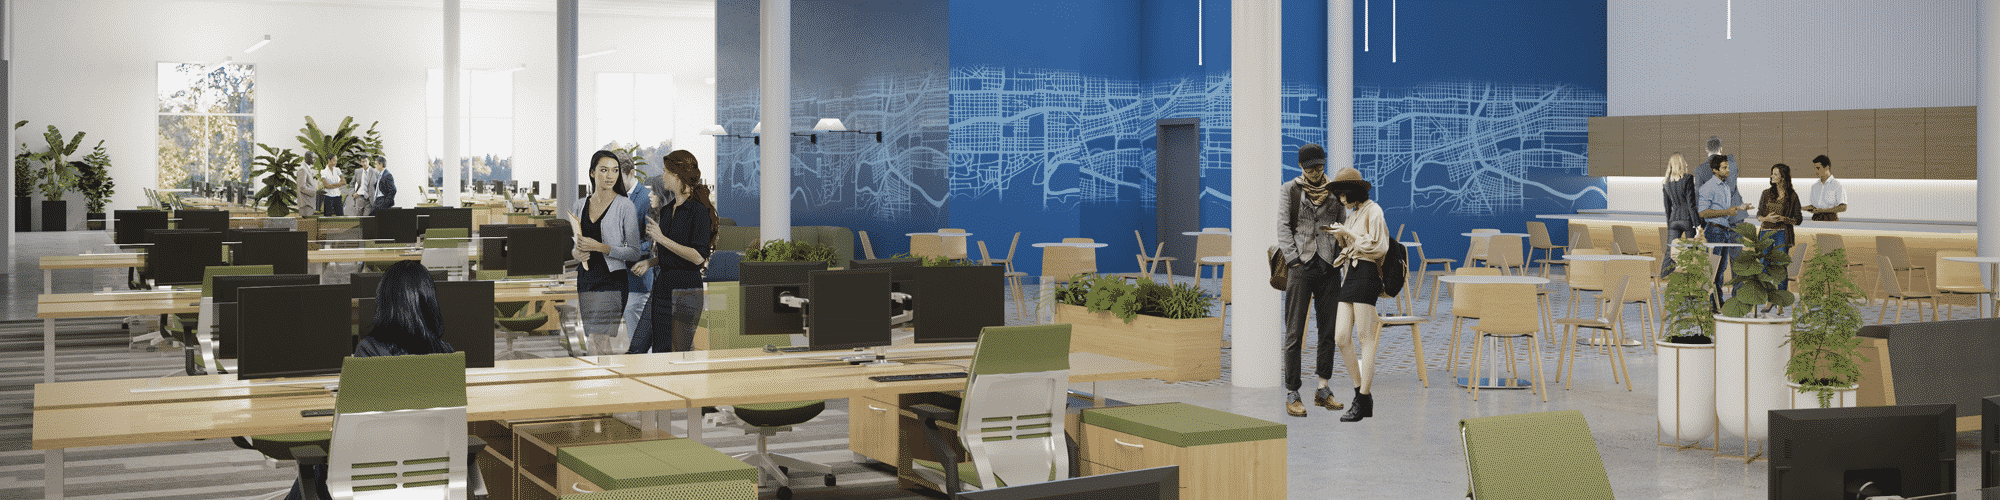 Highland-Tech-Center-Interior-Rendering-View2